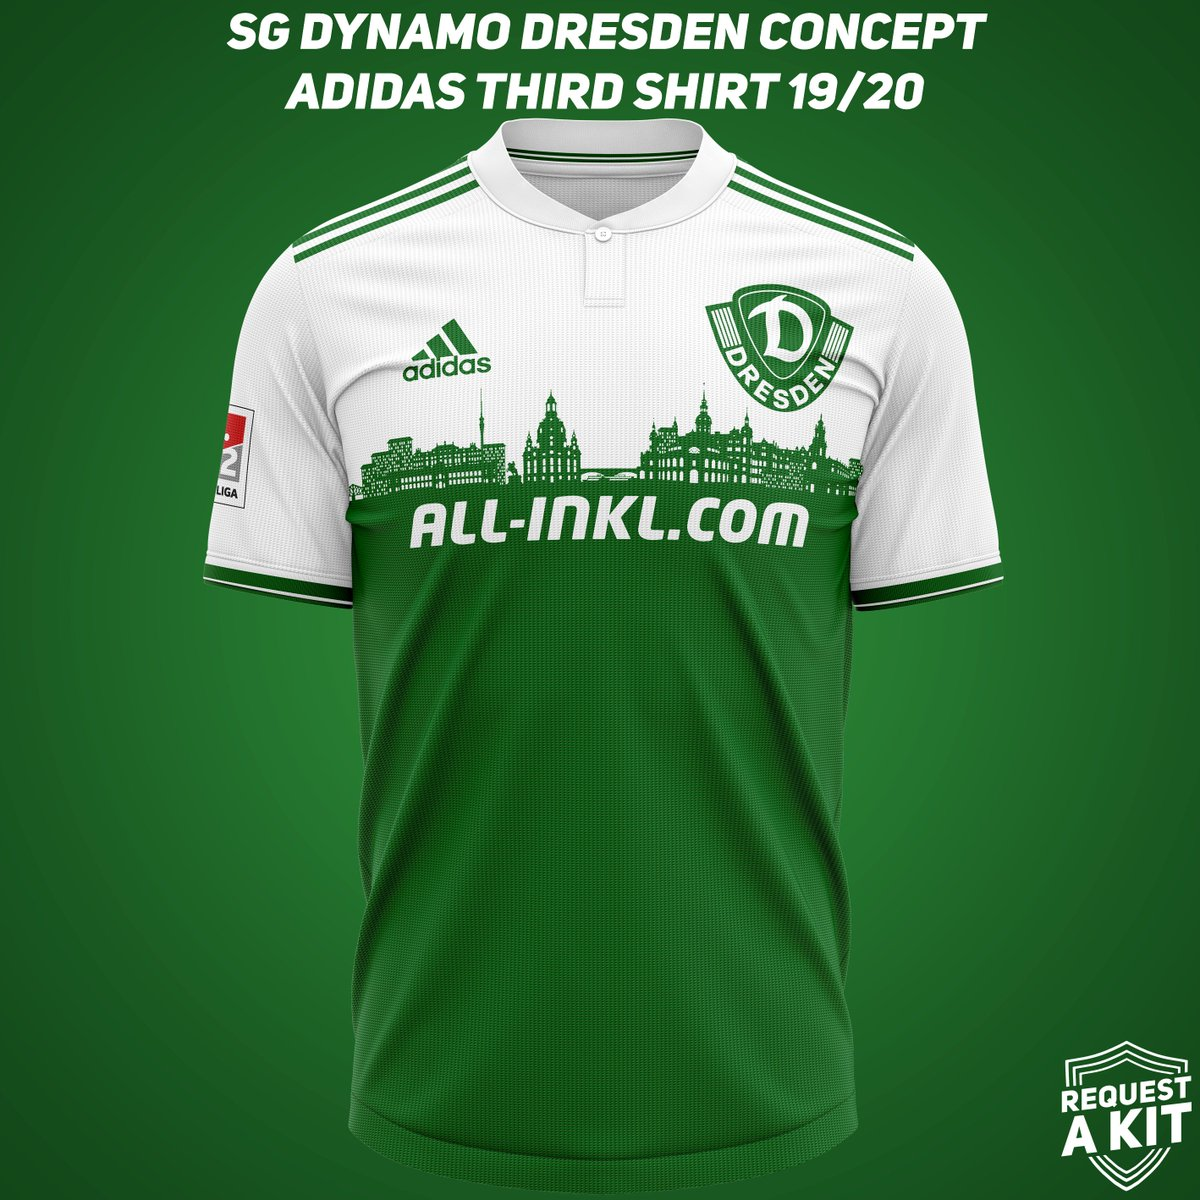 Request A Kit On Twitter Sg Dynamo Dresden Concept Adidas